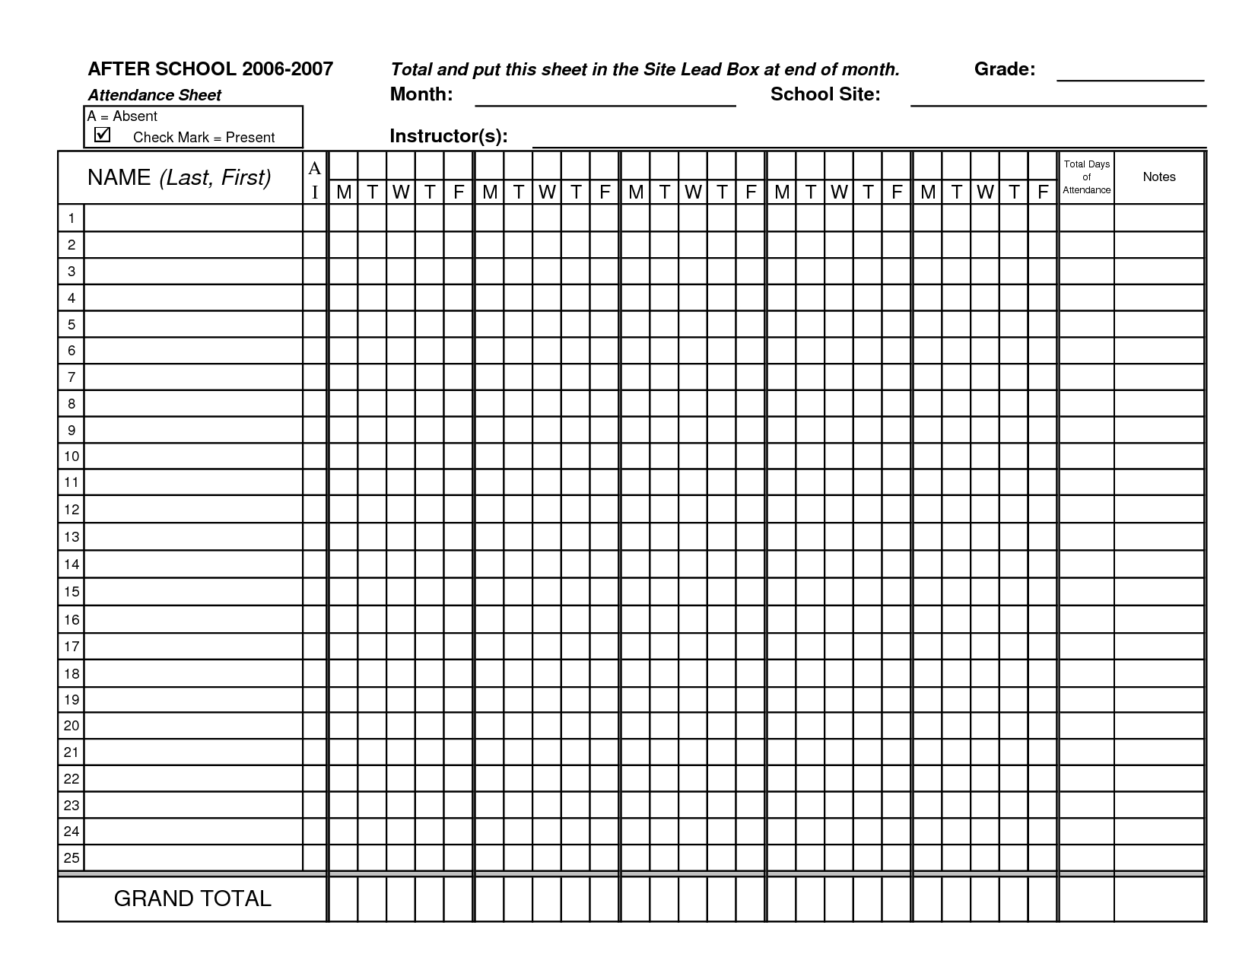 Attendance Tracking Sheet Template 8   Down Town Ken More Intended For Attendancetracking Spreadsheet Template